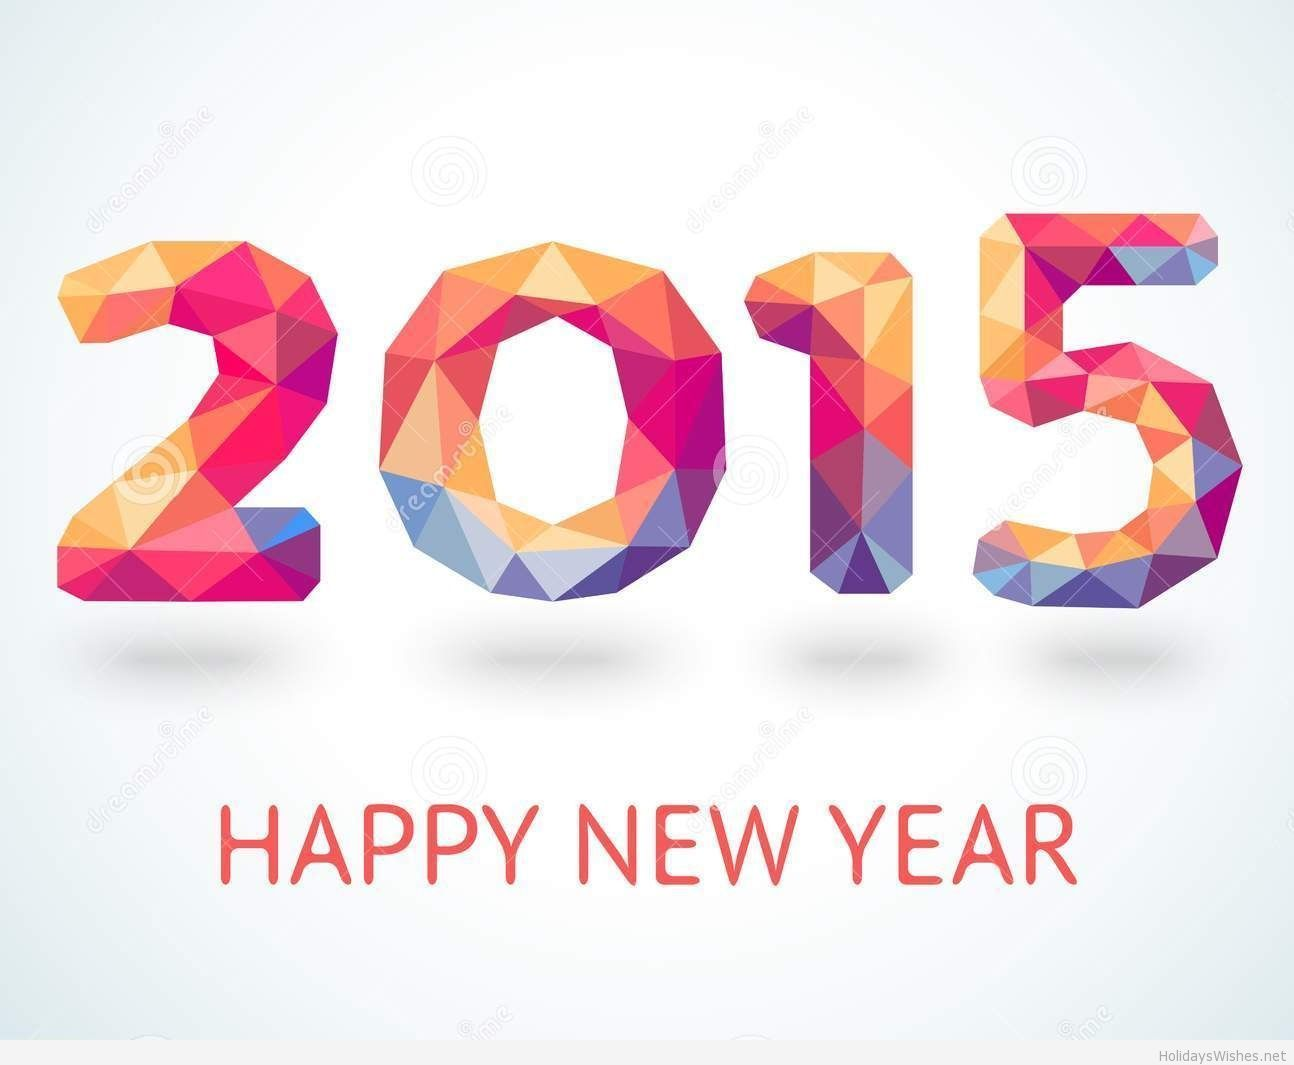 Wish 2015 happy new year from my awesome sister pamela pins happy new year 2015 colorful greeting card made in polygonal origami style vector illustration for holiday design party poster greeting c kristyandbryce Choice Image